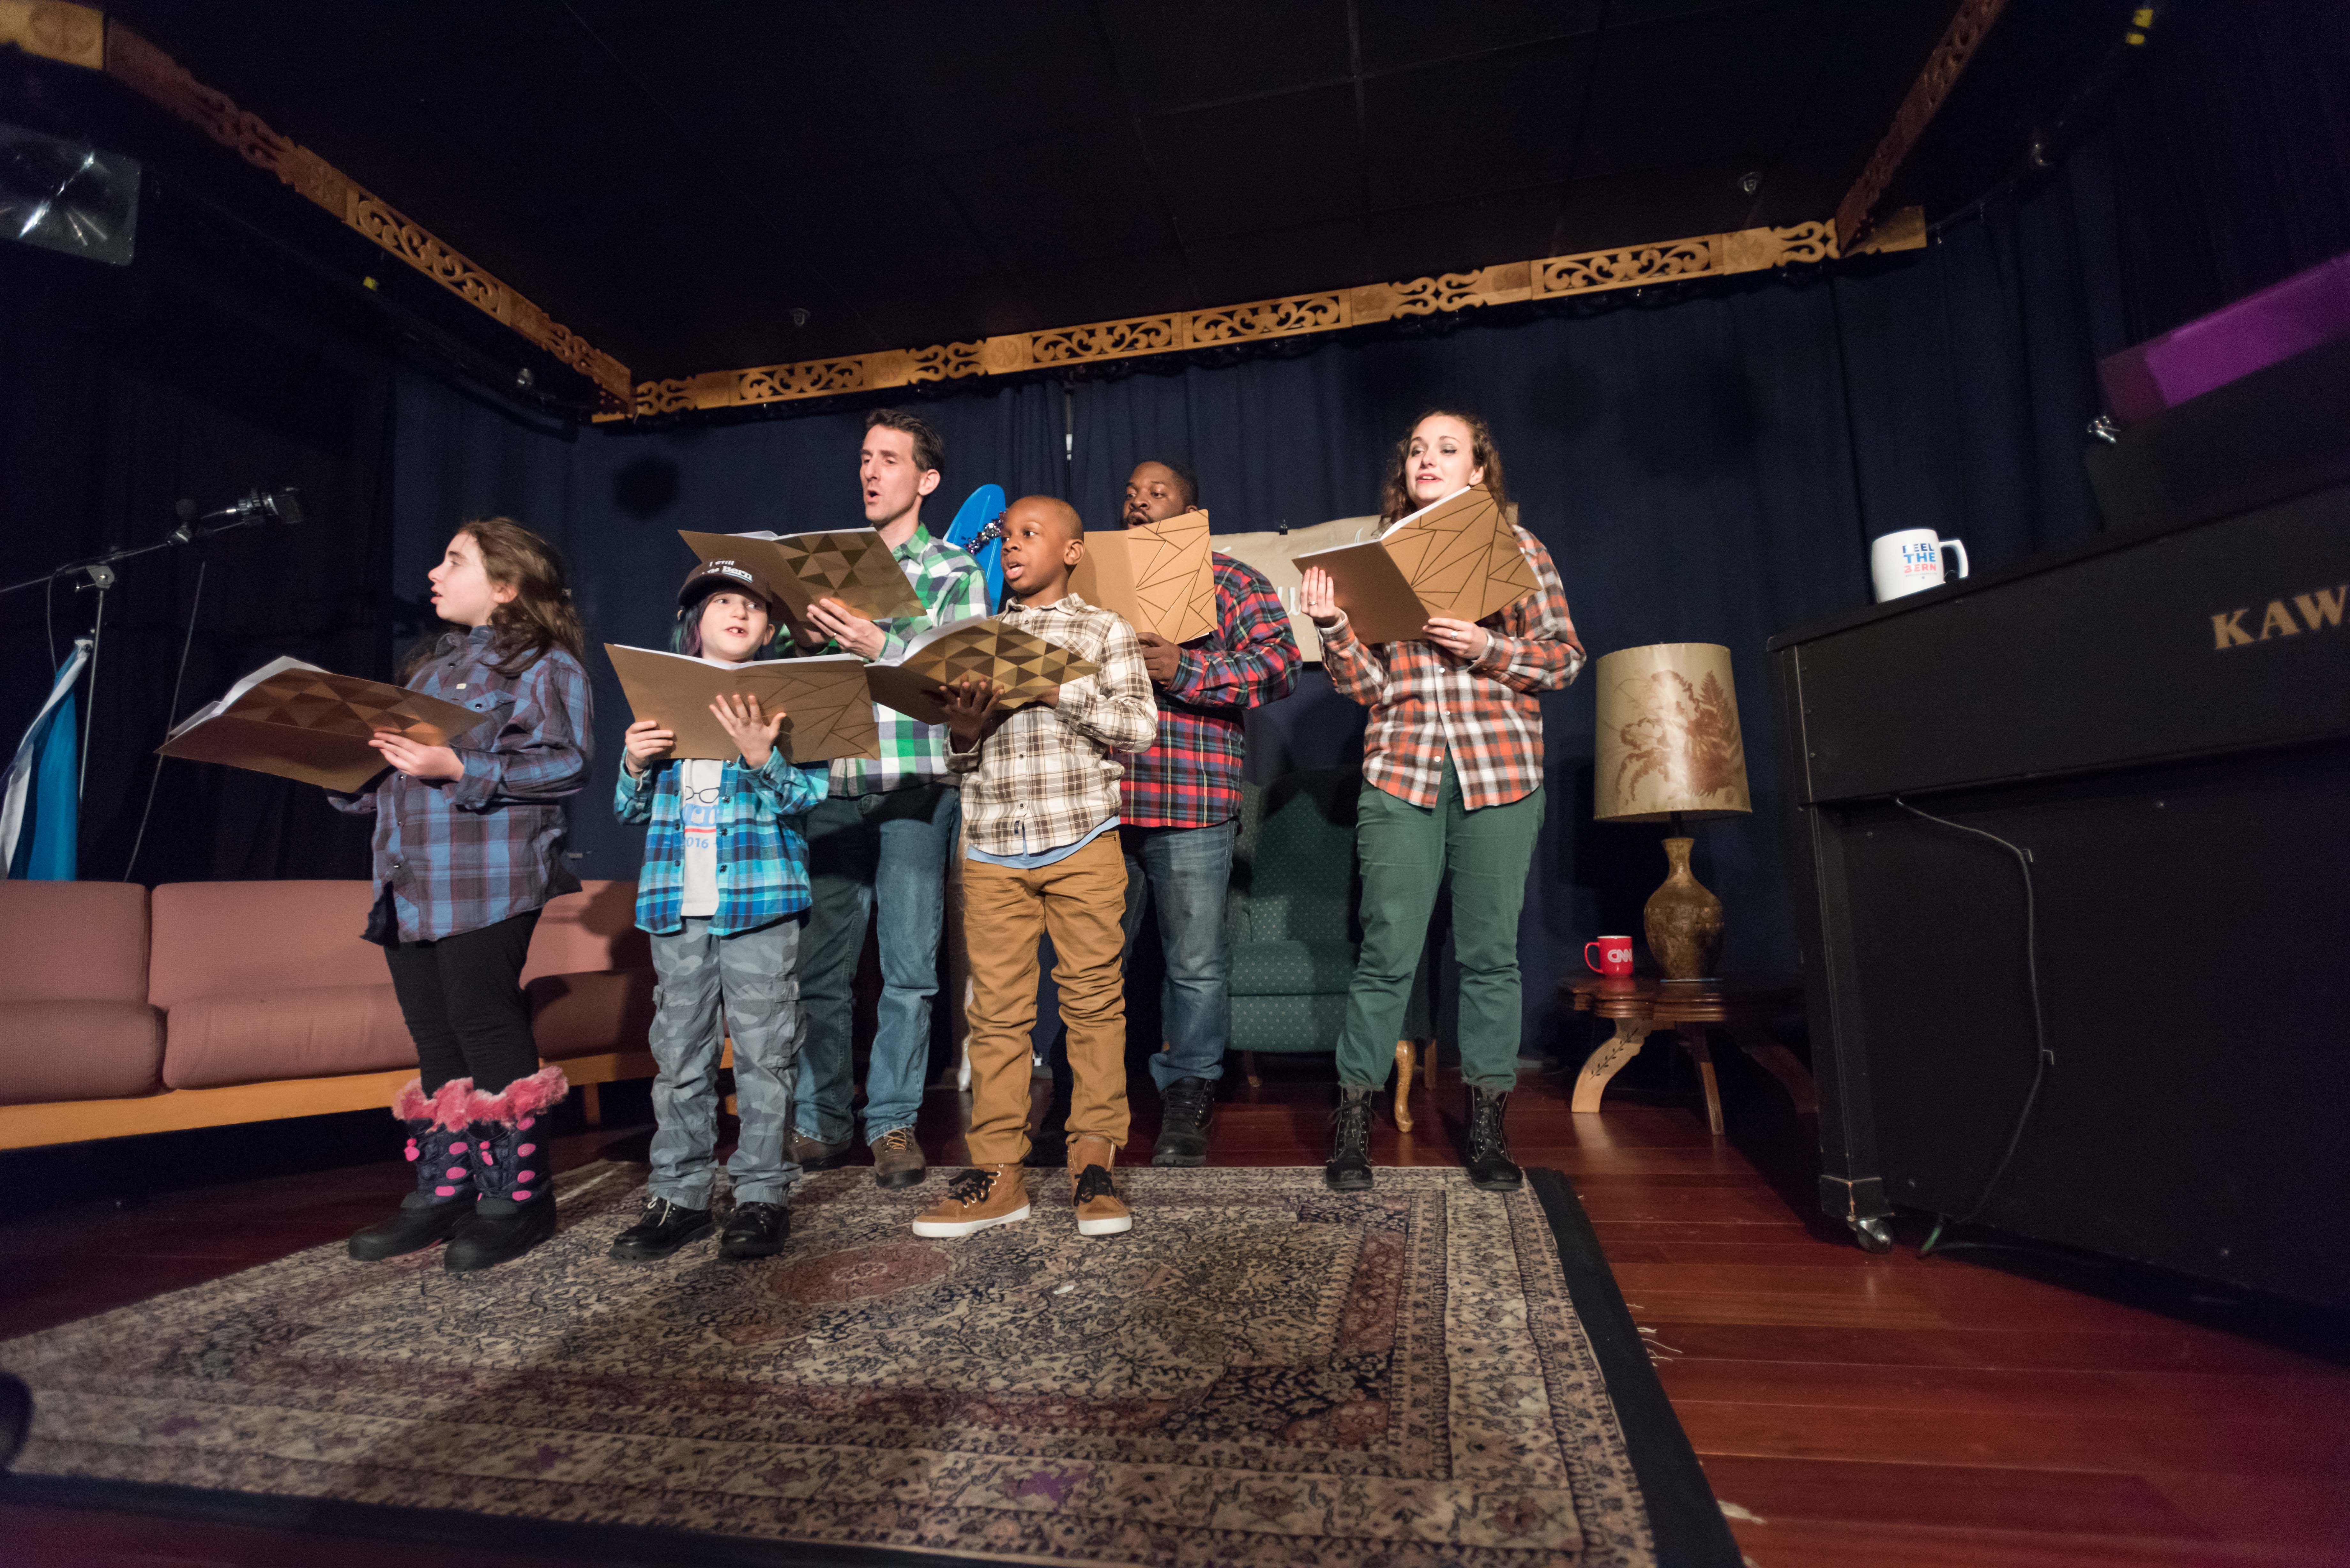 Back row, left to right: Jeff Epstein,Edson Sean,Kristin Freedman.<br> Front row: Ariel Eve, Brokaw, and Jaden Bullock singing from the hymnal of NotMeUs holiday songs.